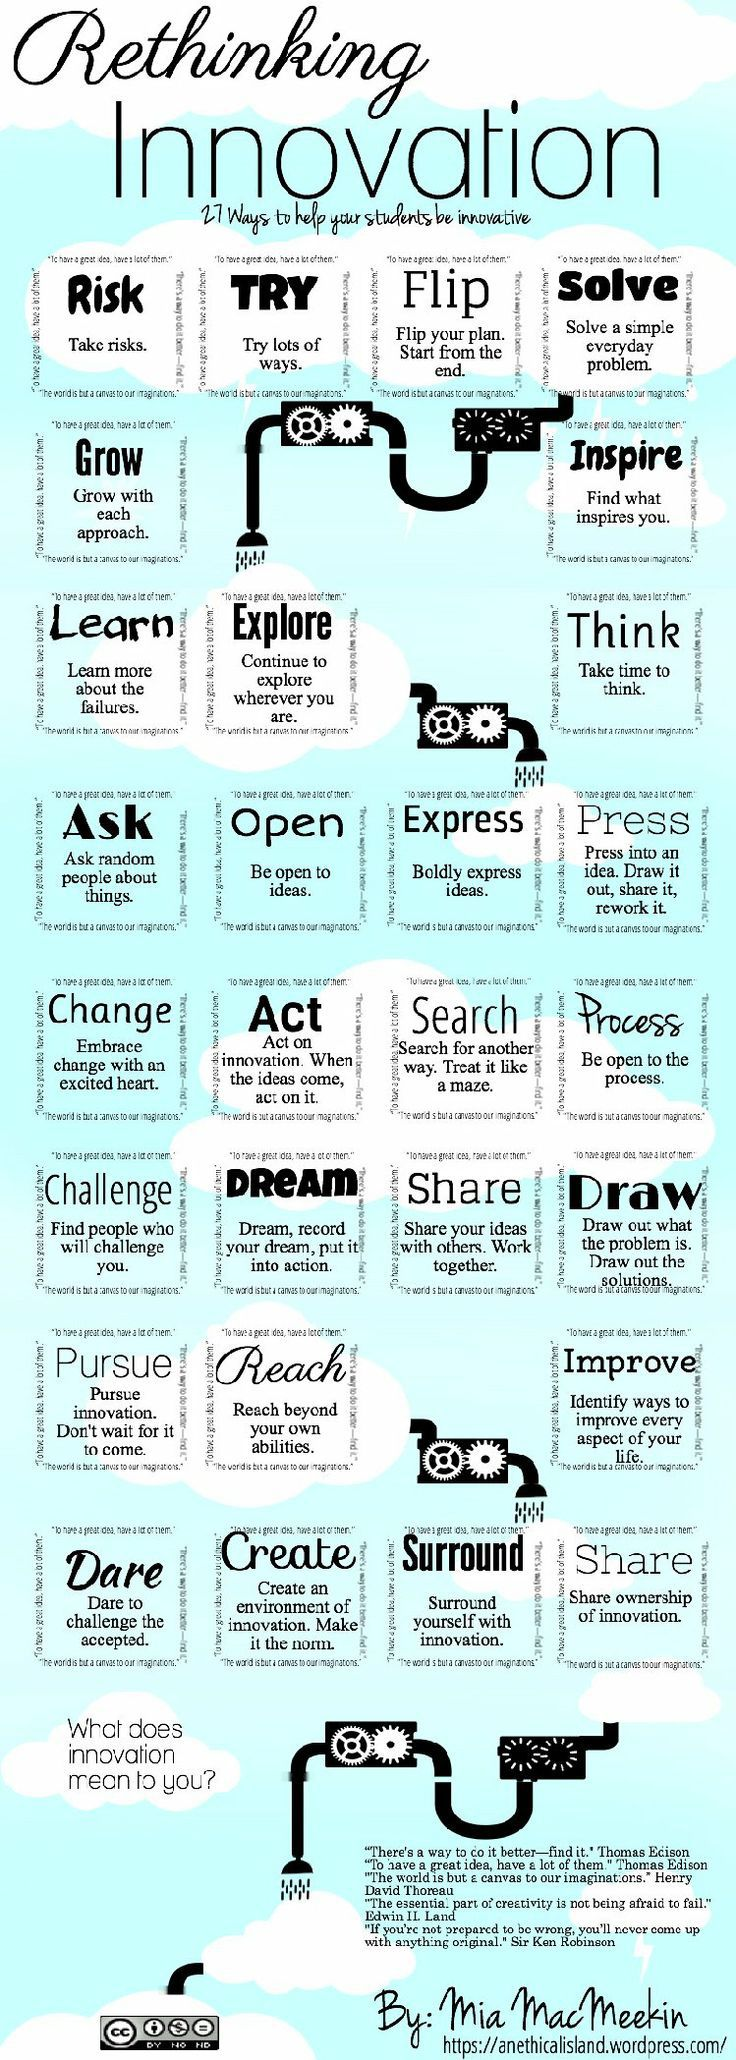 1225 best images about CREATIVITY & INNOVATION on Pinterest | In ...